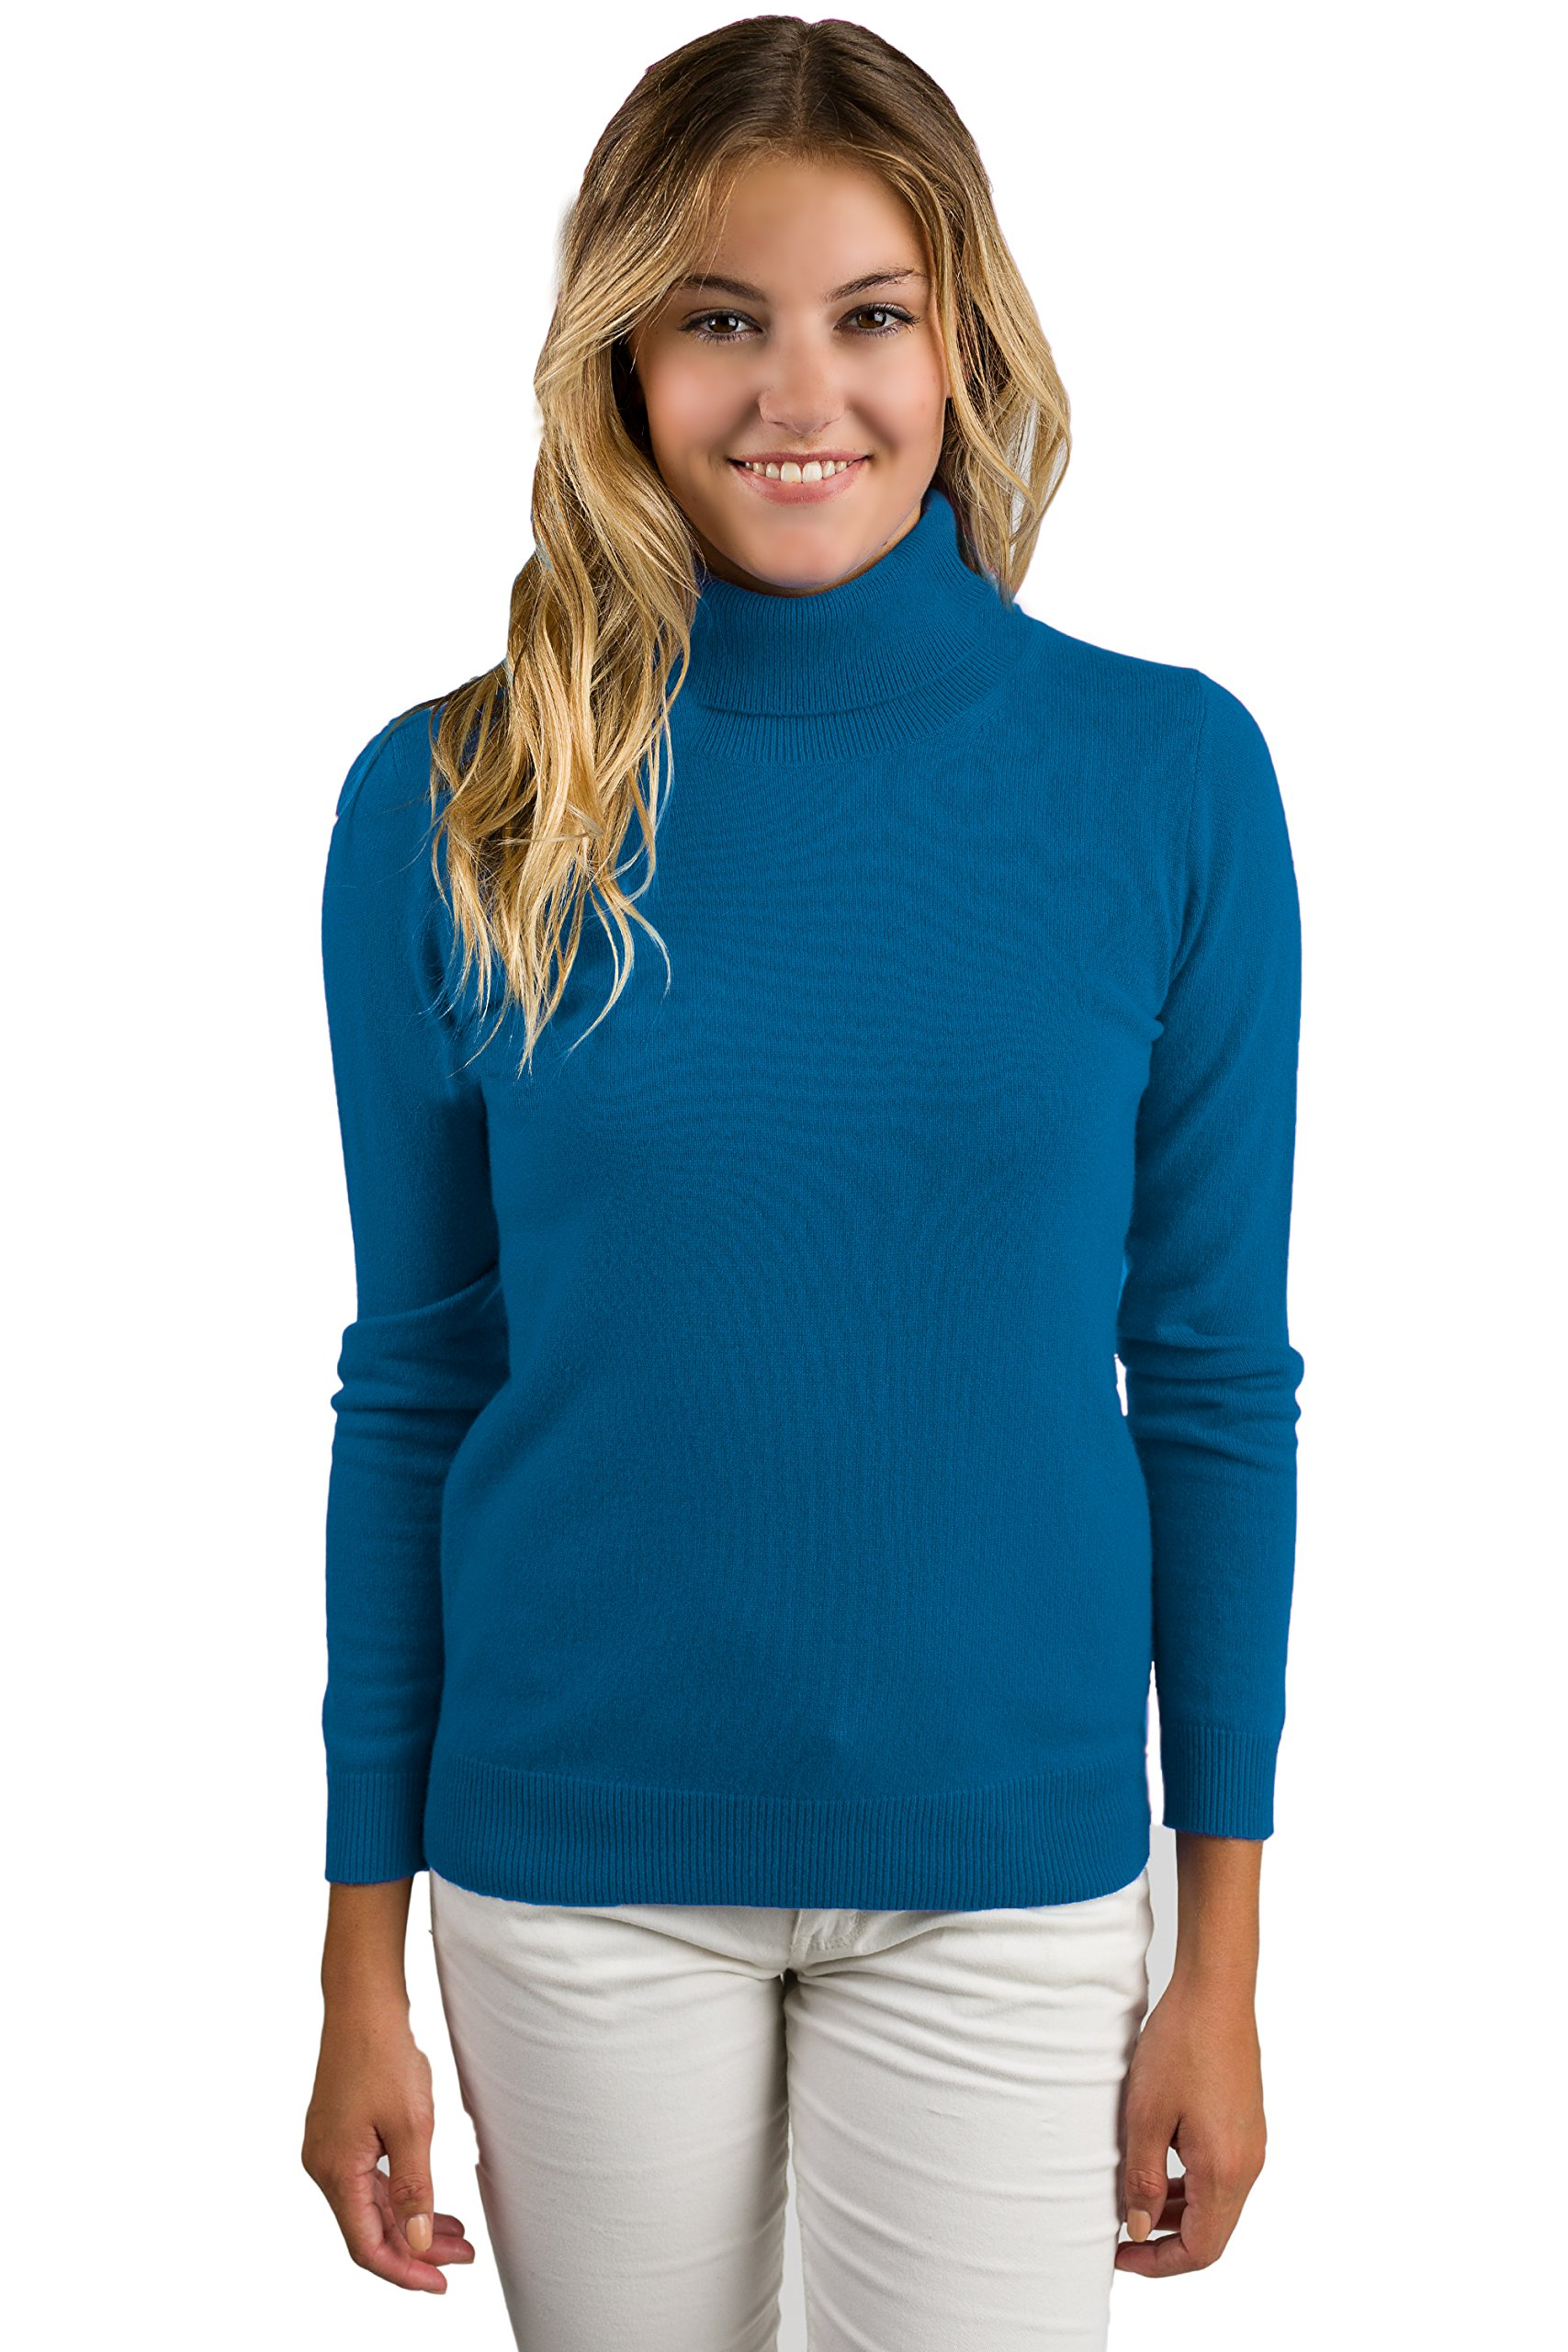 JENNIE LIU Women's 100% Pure Cashmere Long Sleeve Pullover Turtleneck Sweater (S, Peacock)